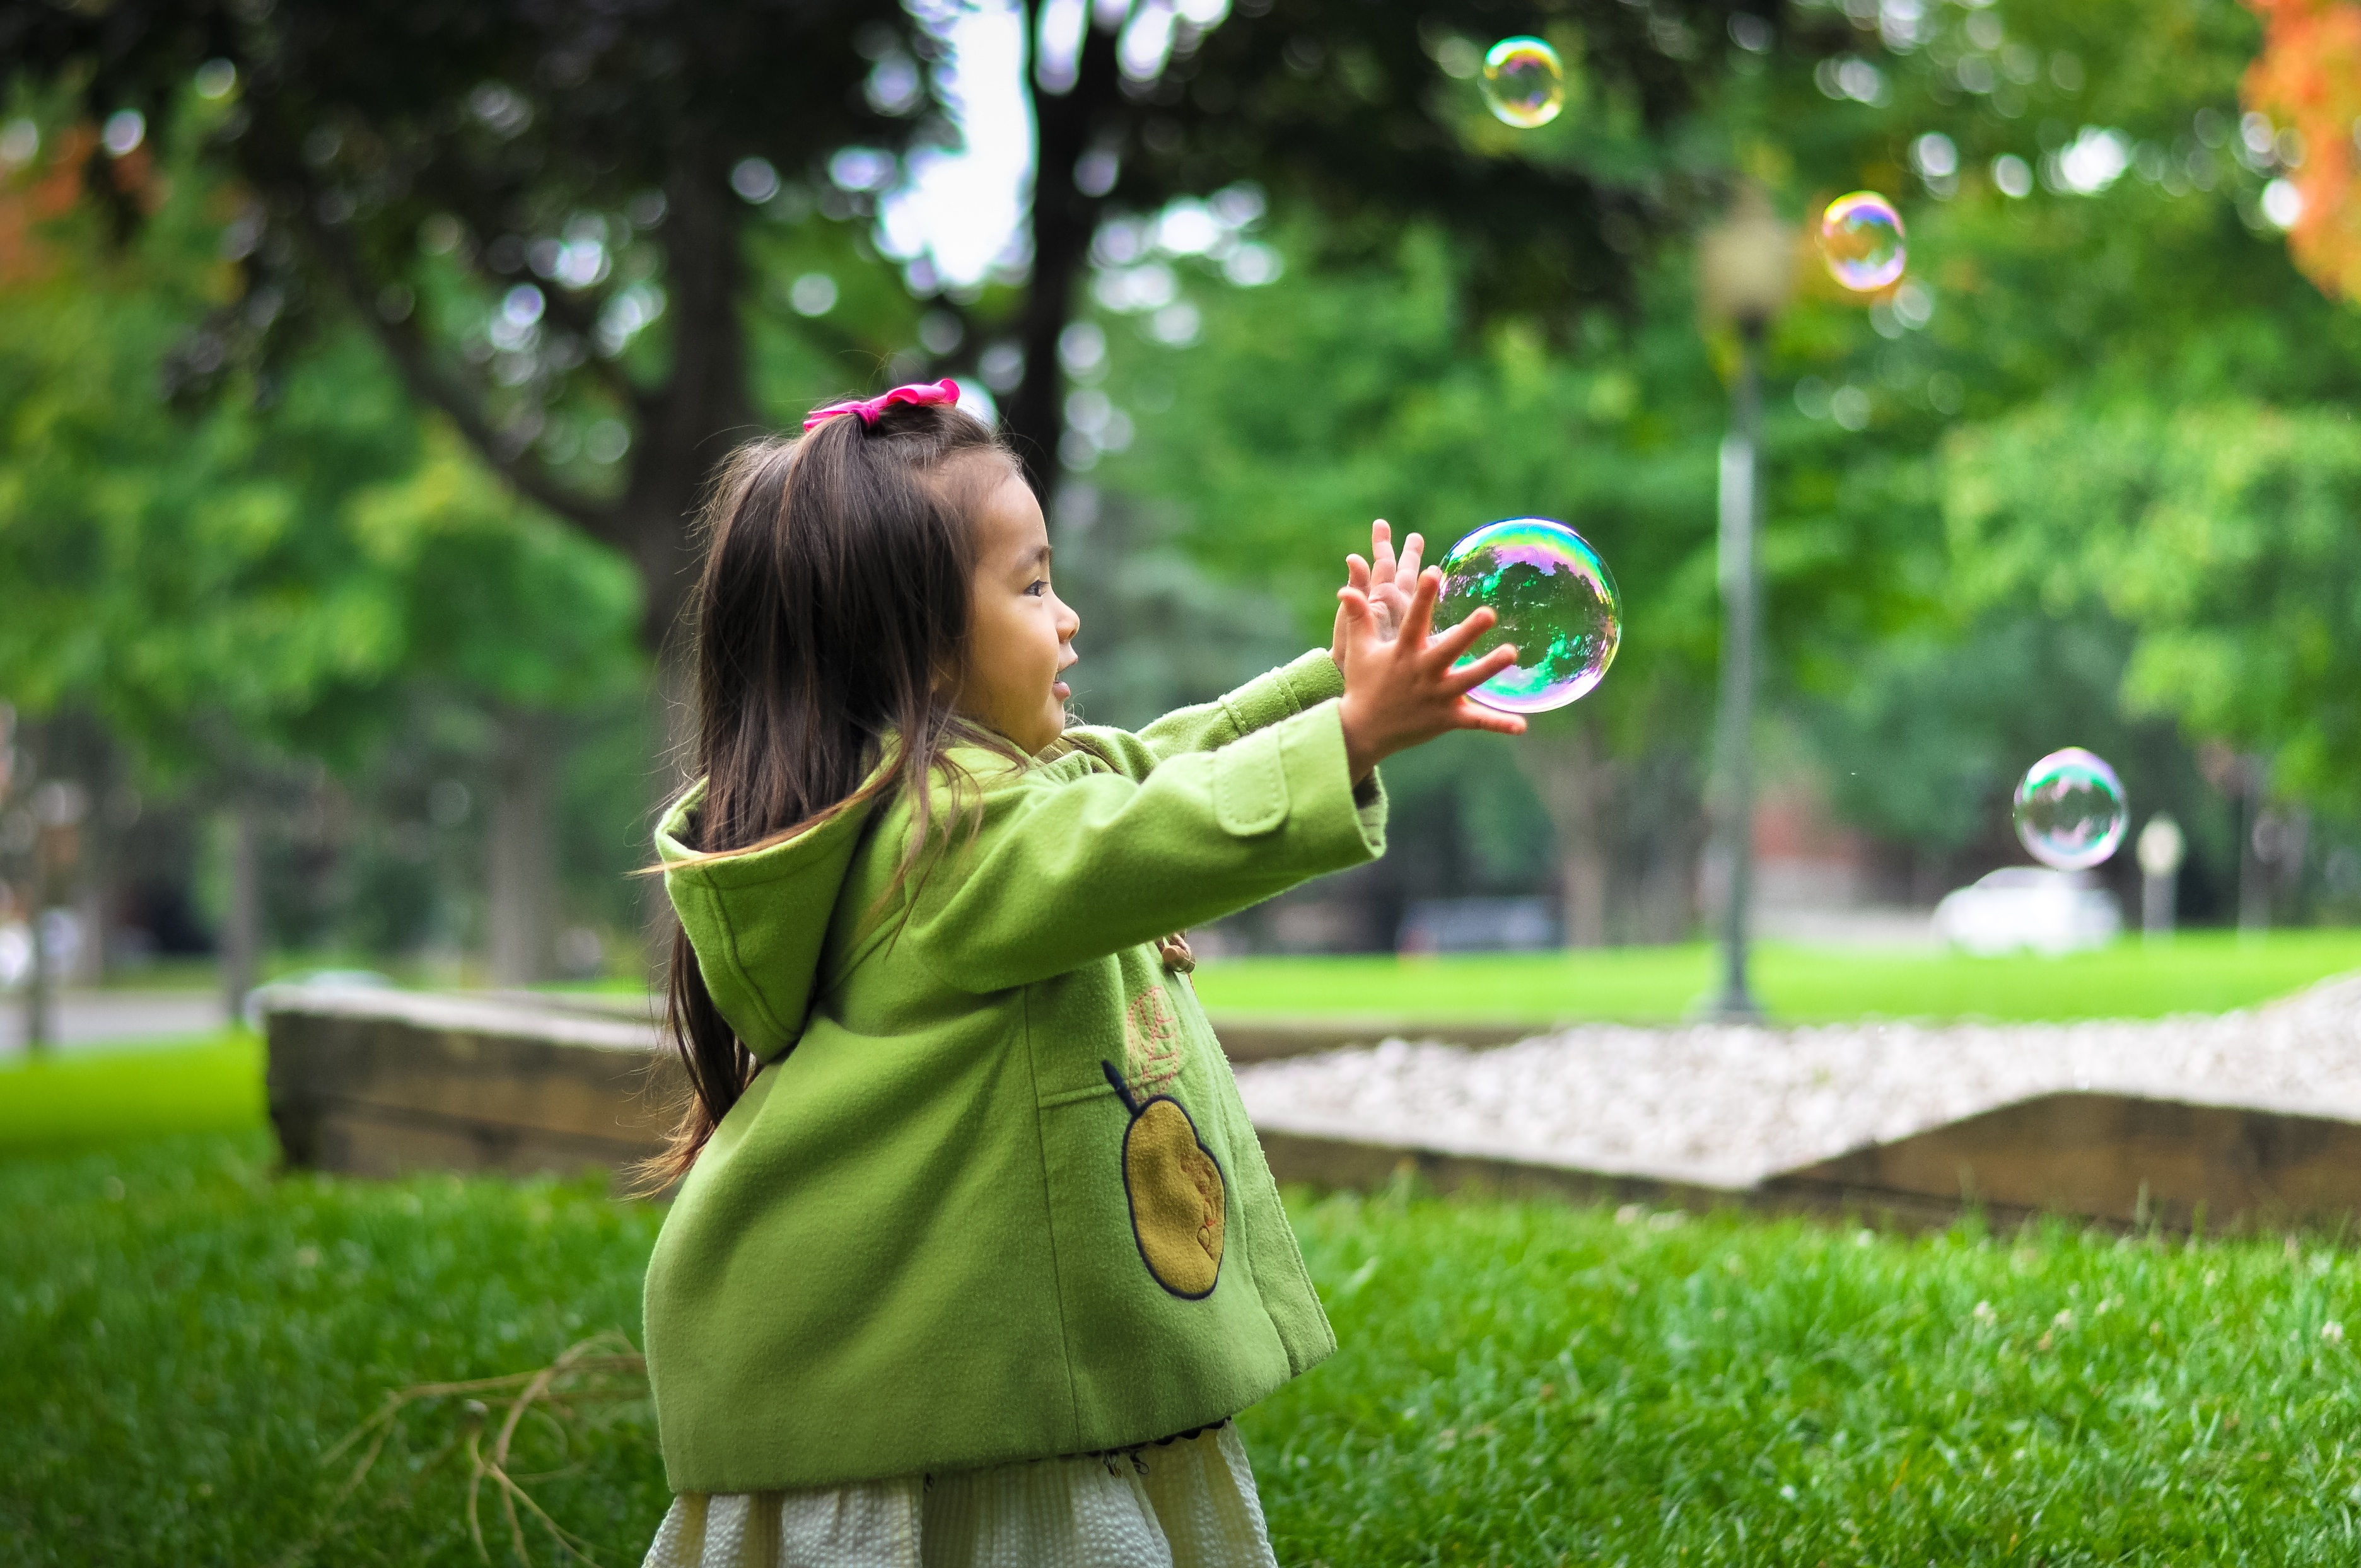 child playing with bubbles in grass